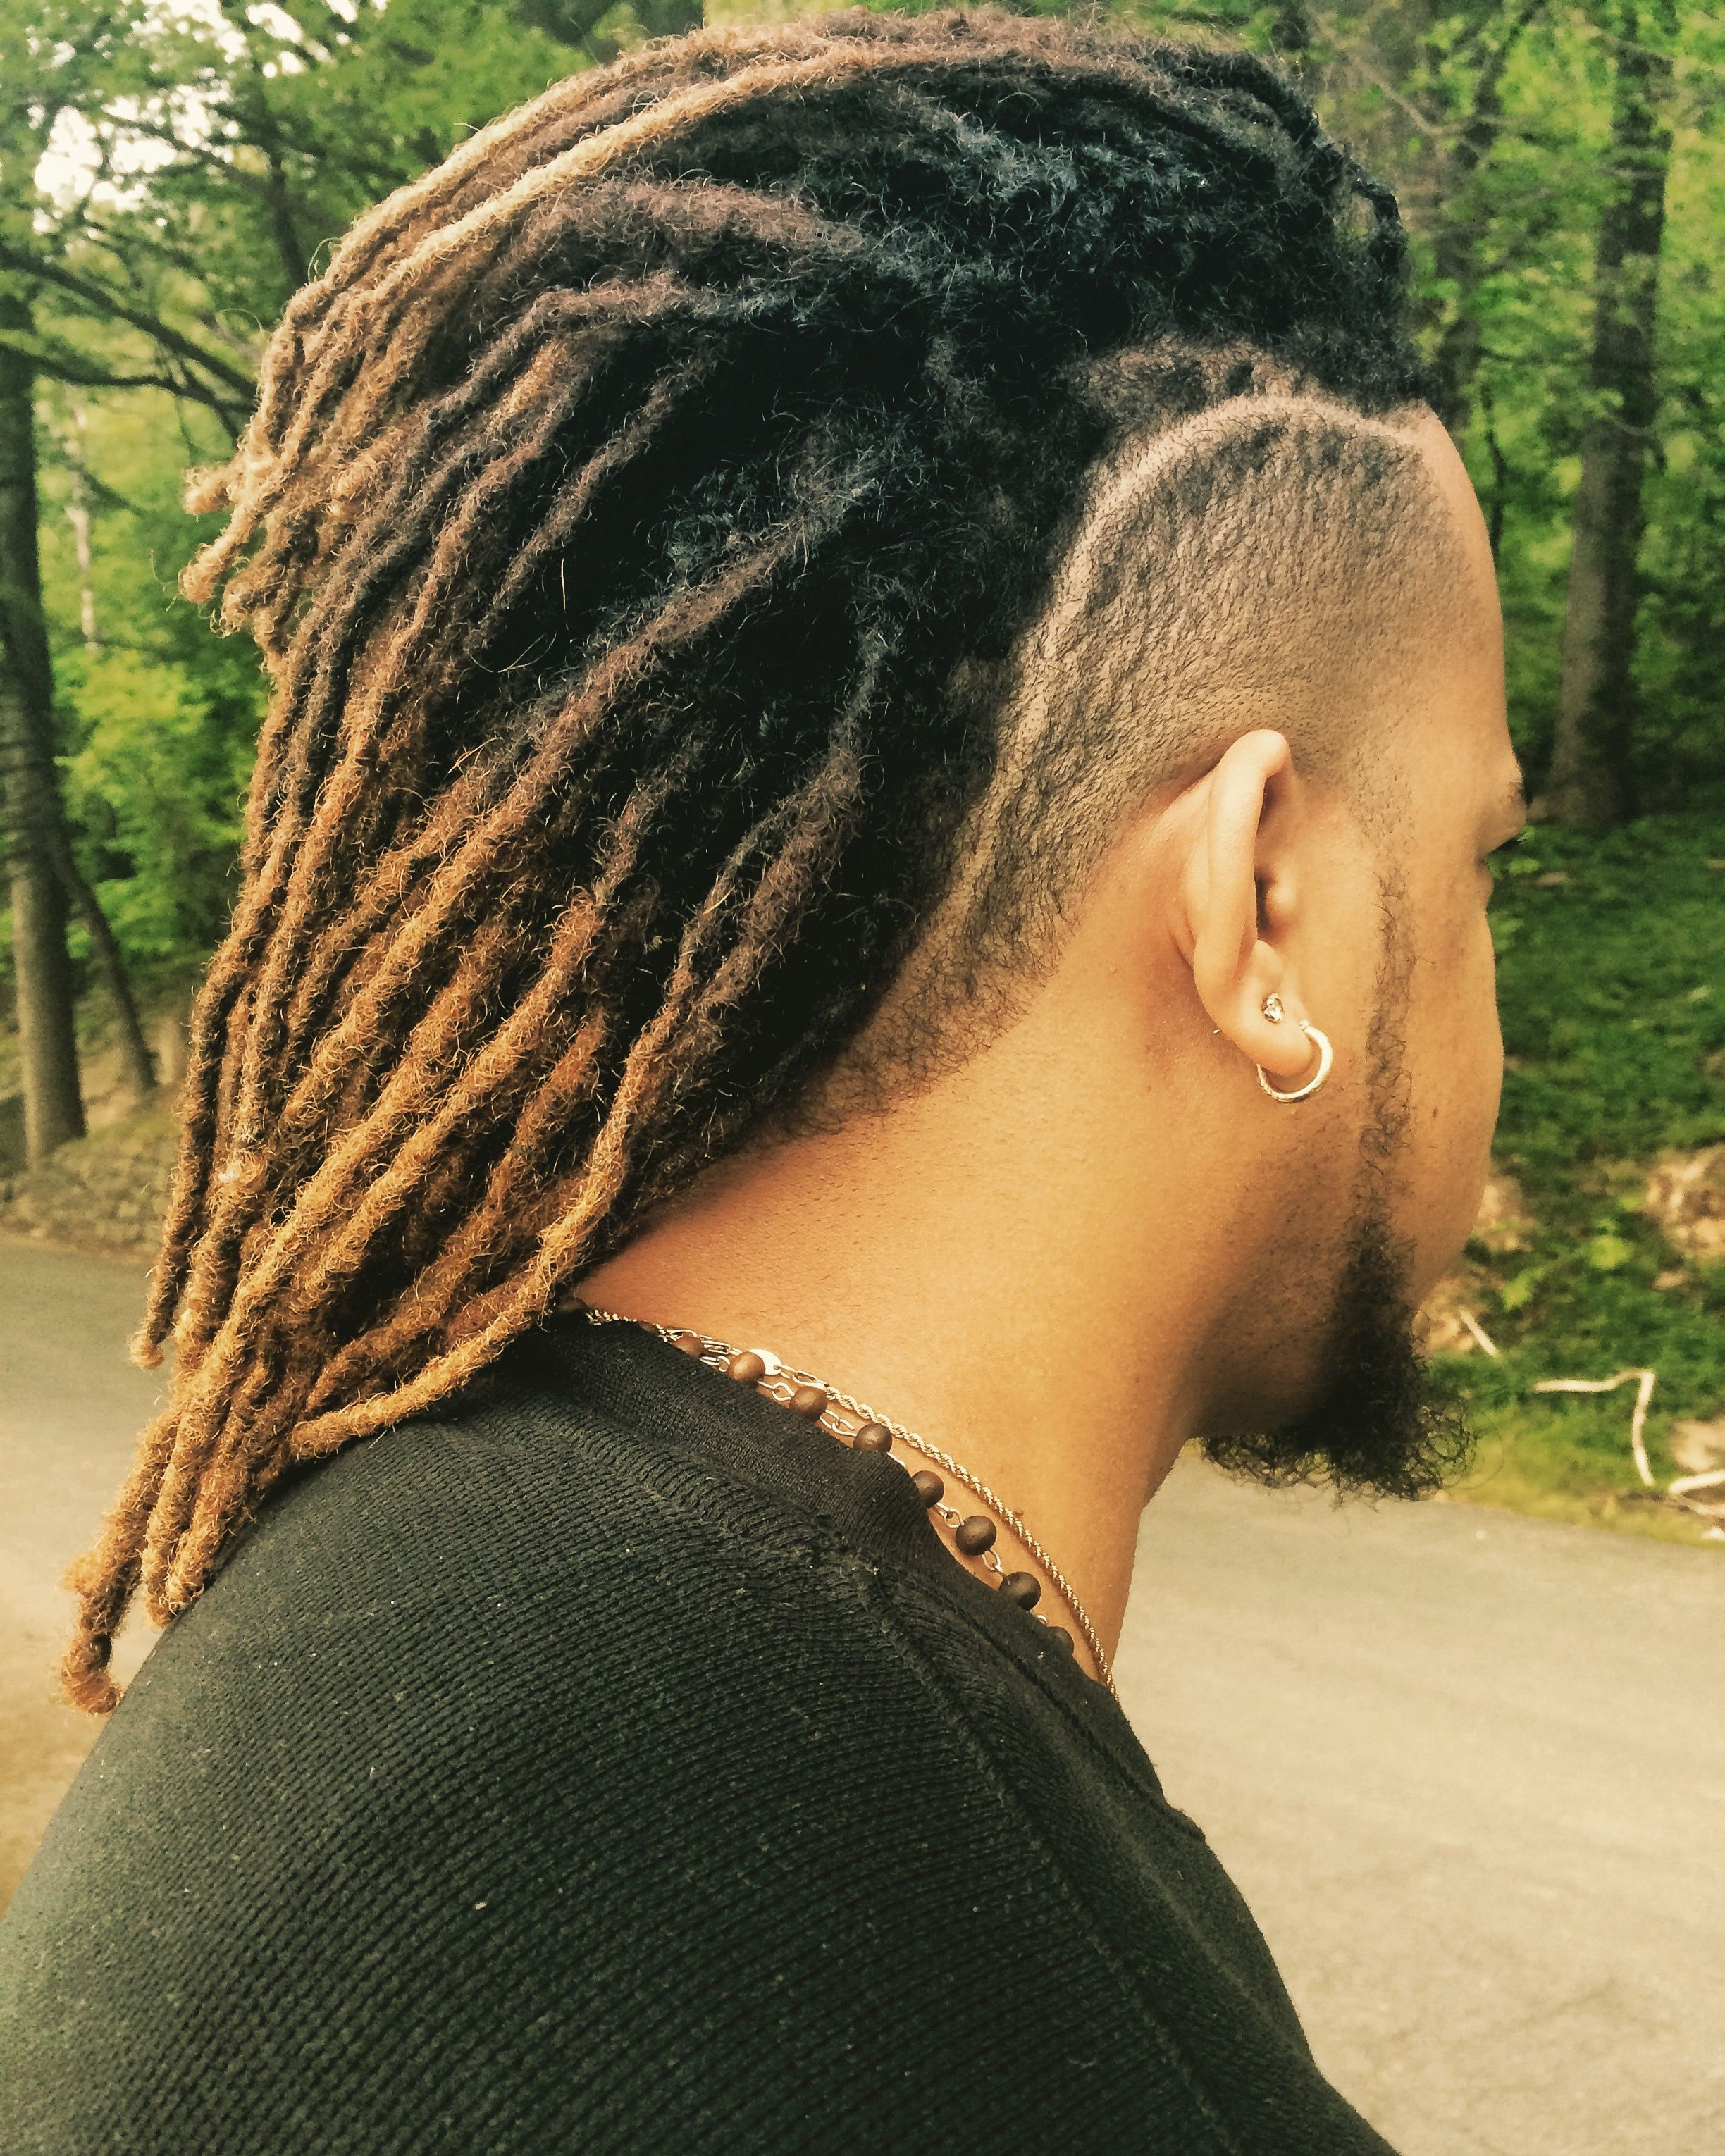 Faux Locs Male Natural Braided Mohawk Hairstyles Hot Girl Hd Wallpaper